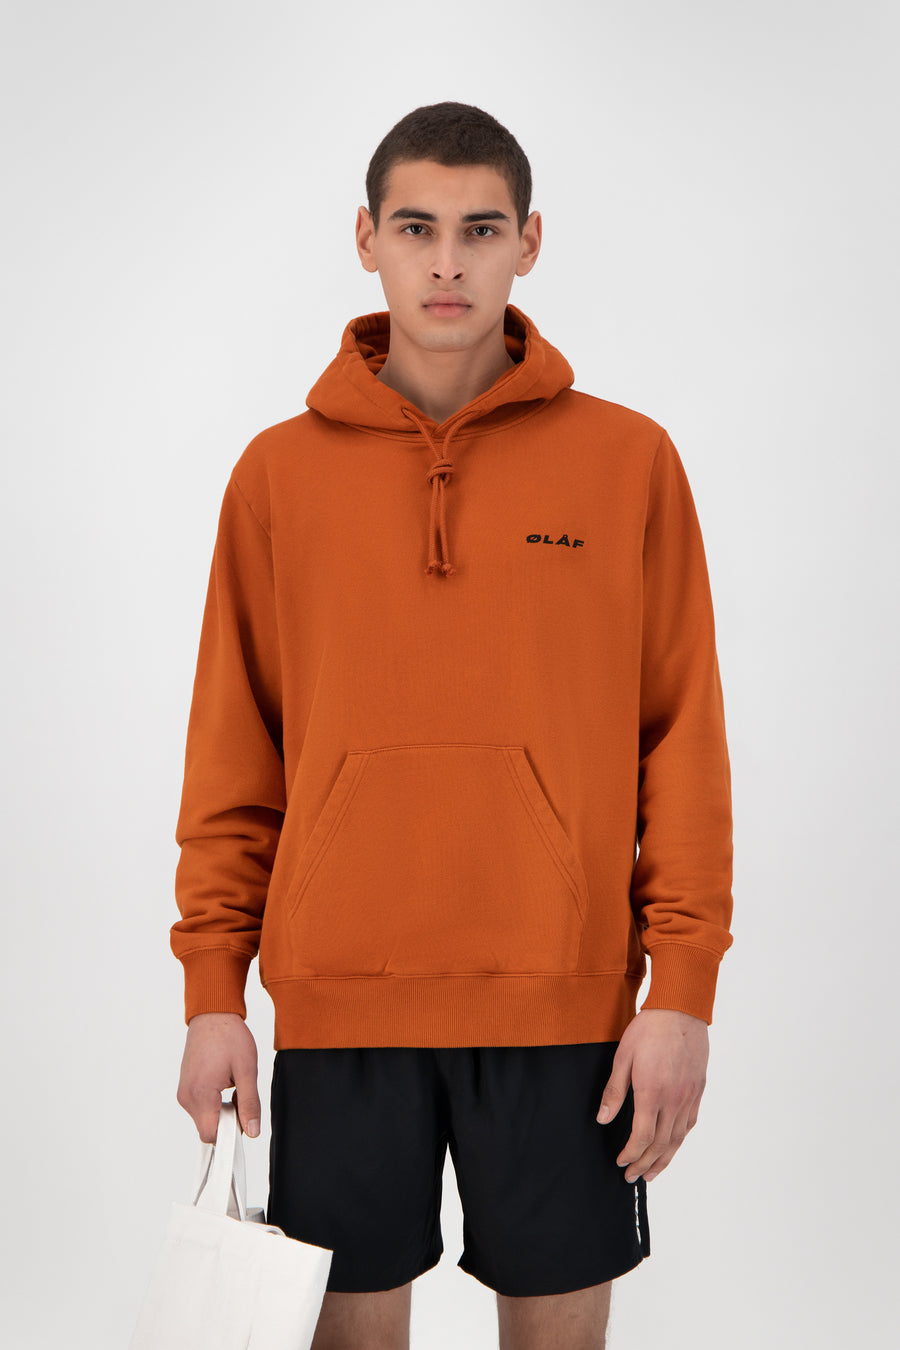 ØLÅF Uniform Hoodie - Burnt Orange